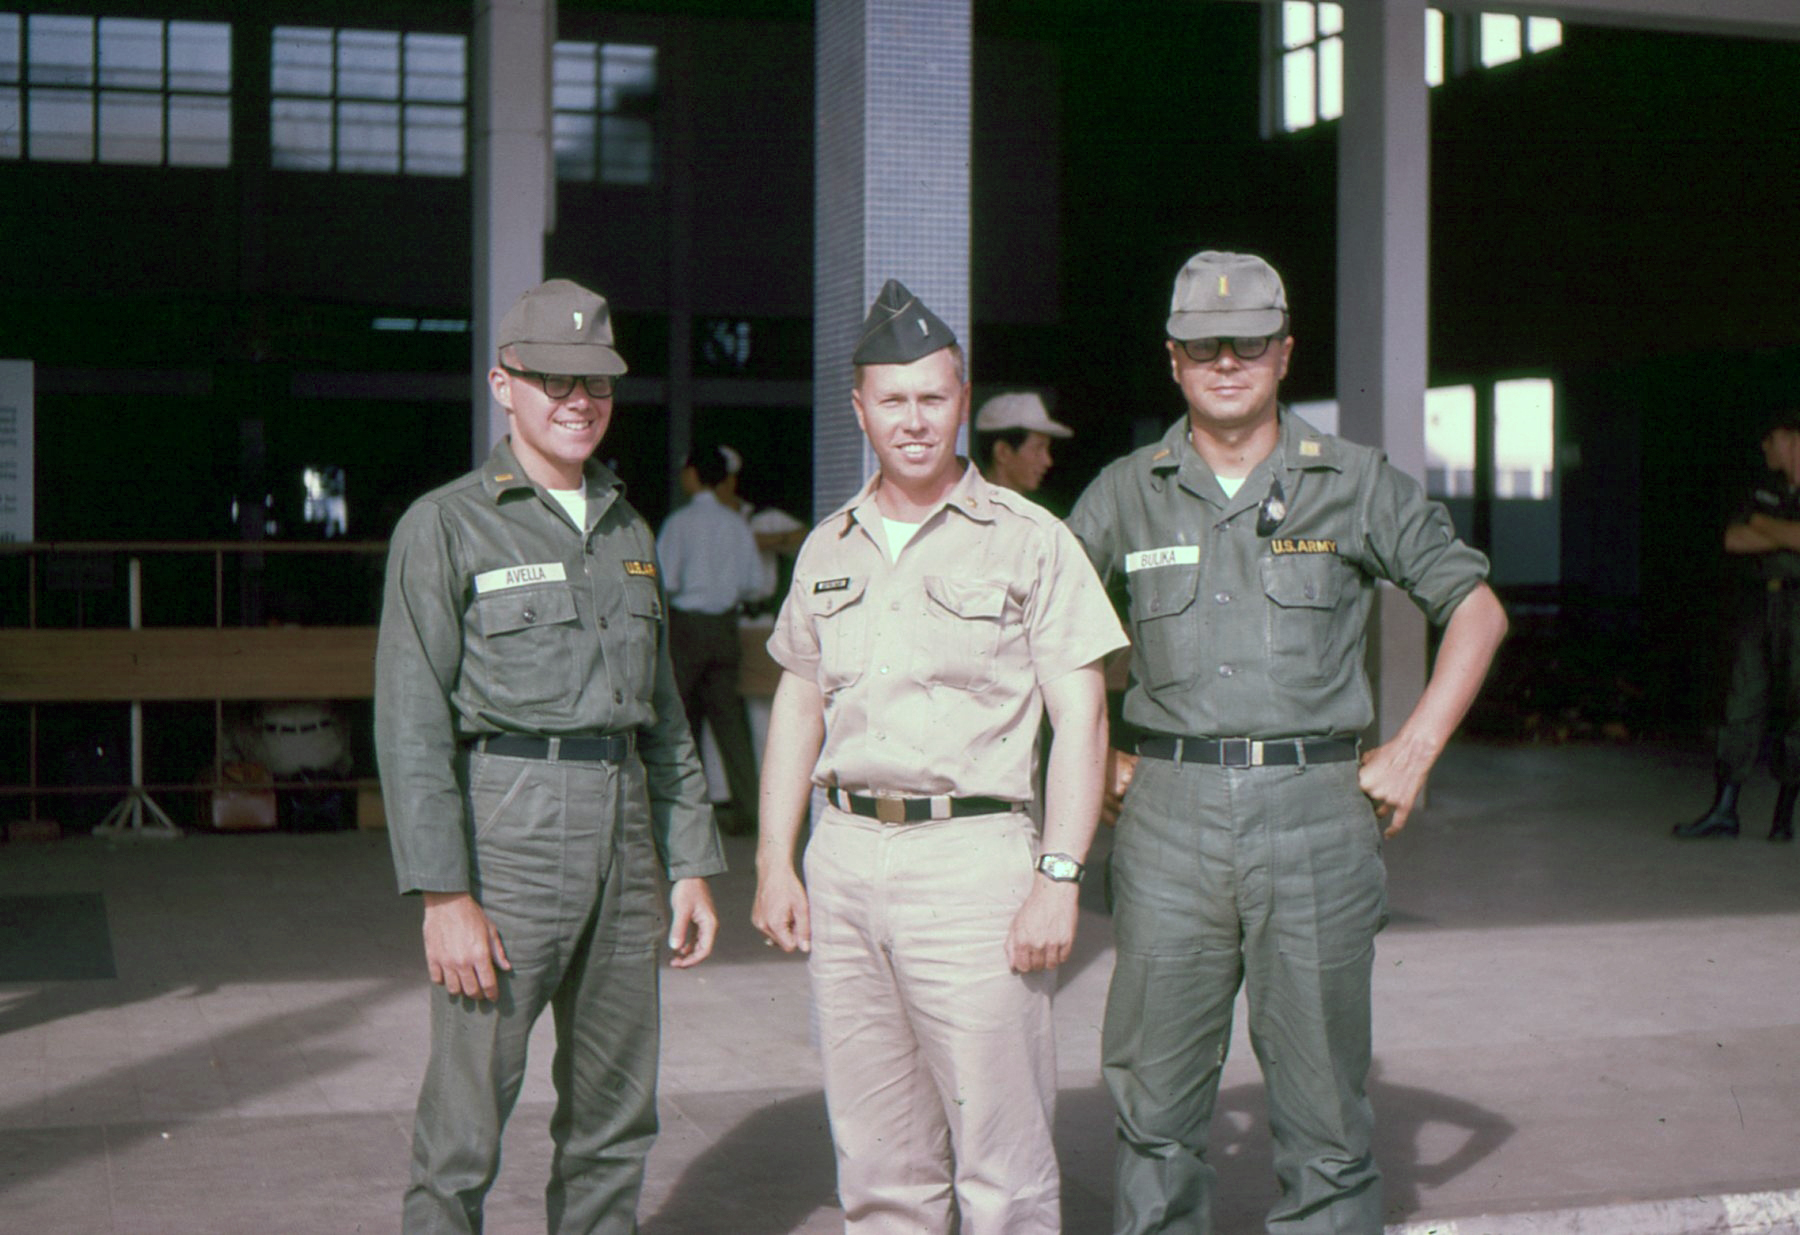 Jay Wiginton (center) at Tan Son Nhut Airport departing from Vietnam